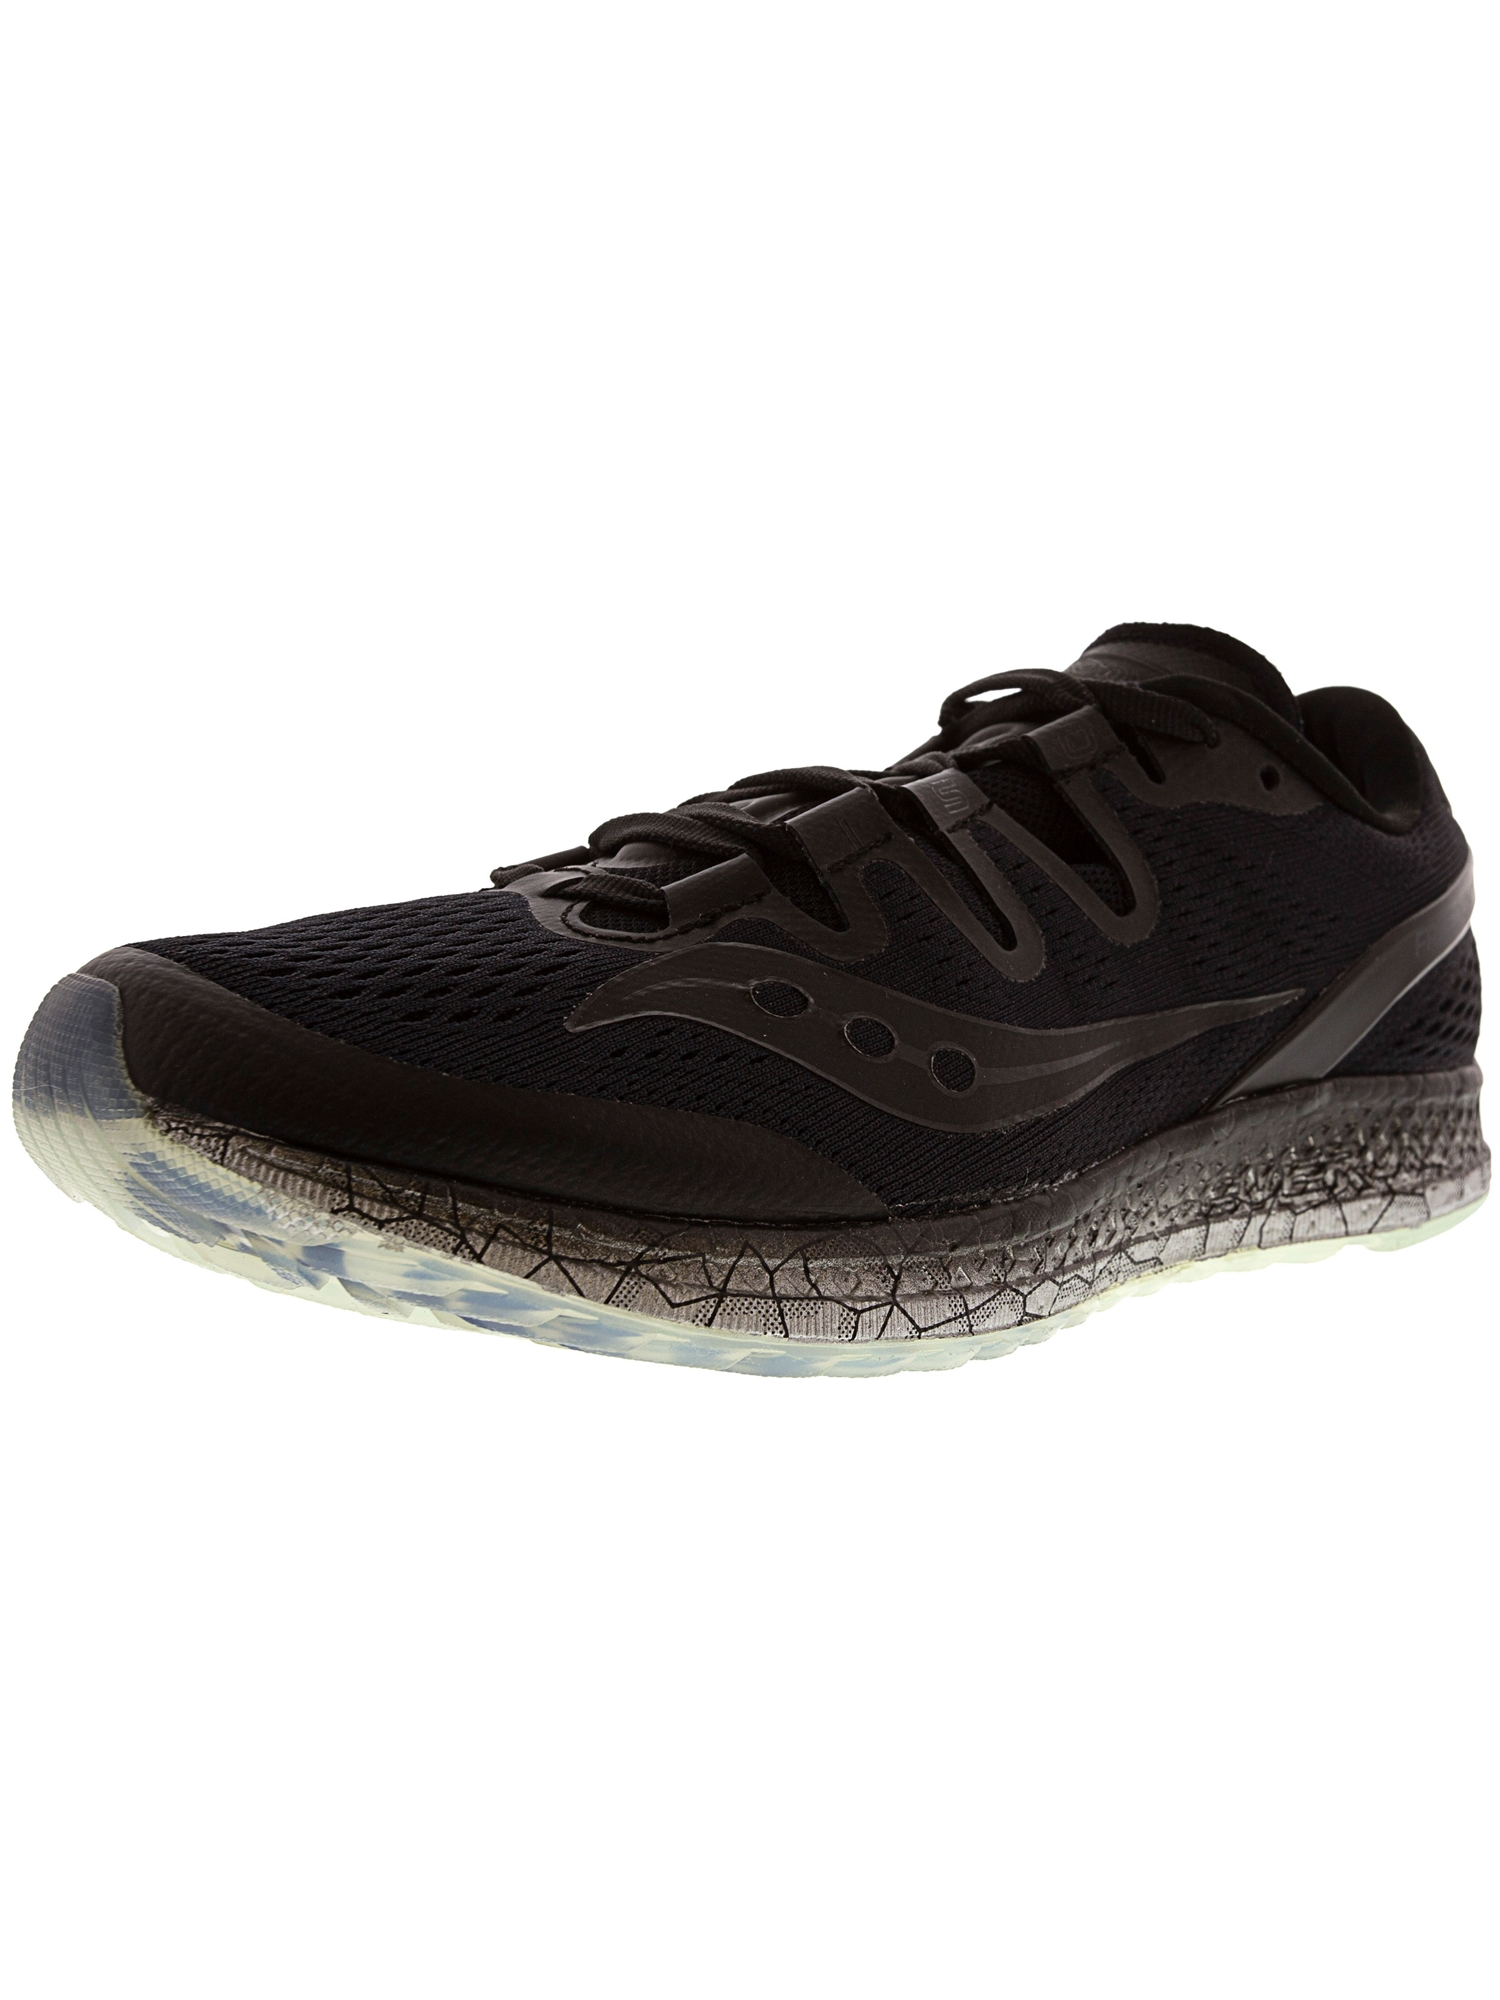 Saucony Women's Freedom Iso Black Ankle-High Mesh Running Shoe - 8.5M